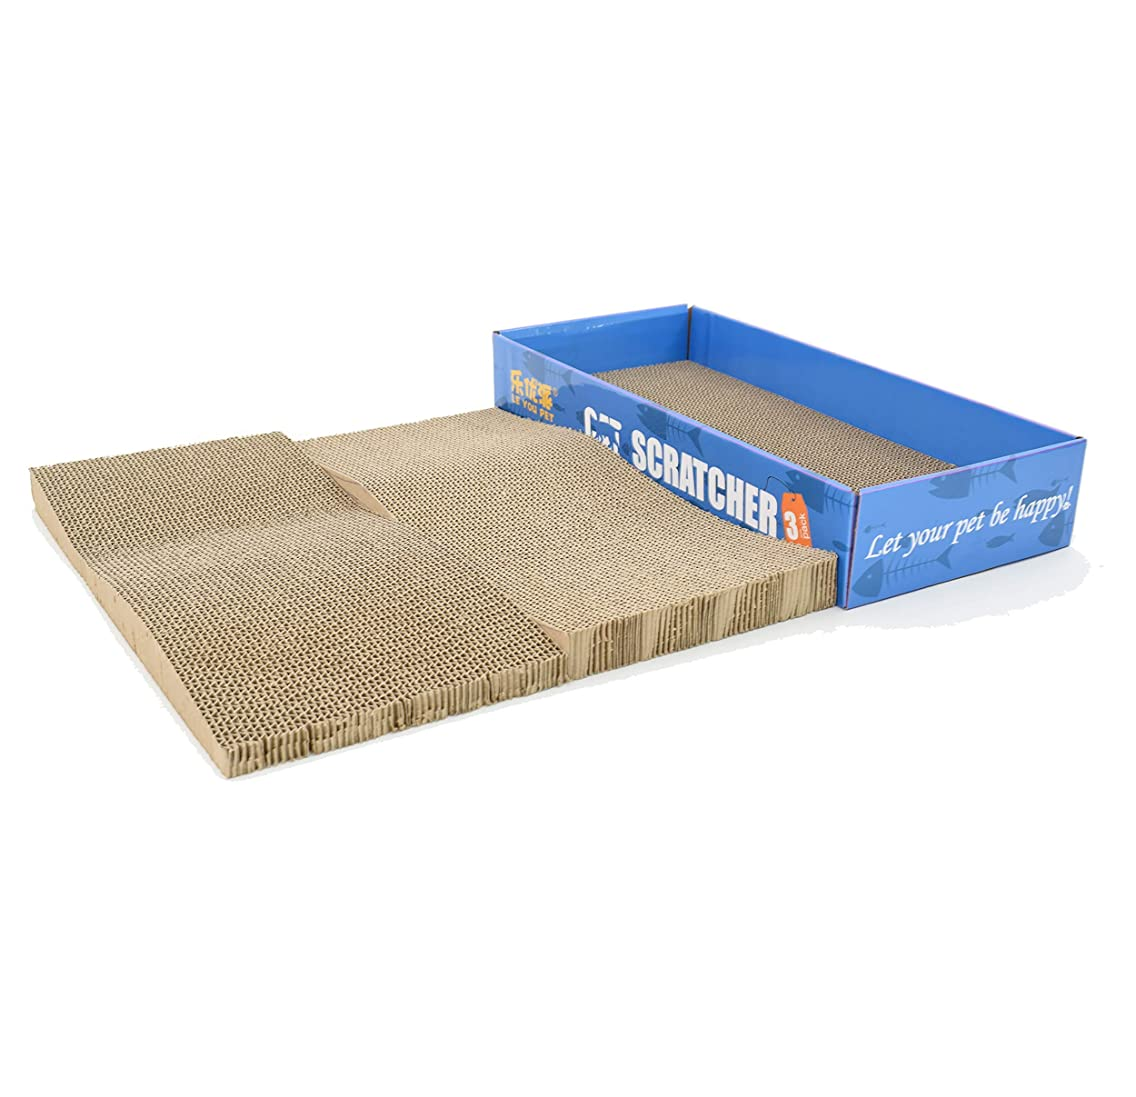 2 in 1 Cat Scratching Post with Catnip, Pad& Board,Two Packs in One Tray Package, Kitten Toy, Saving Space and Efficient, Easy Clean and Refill